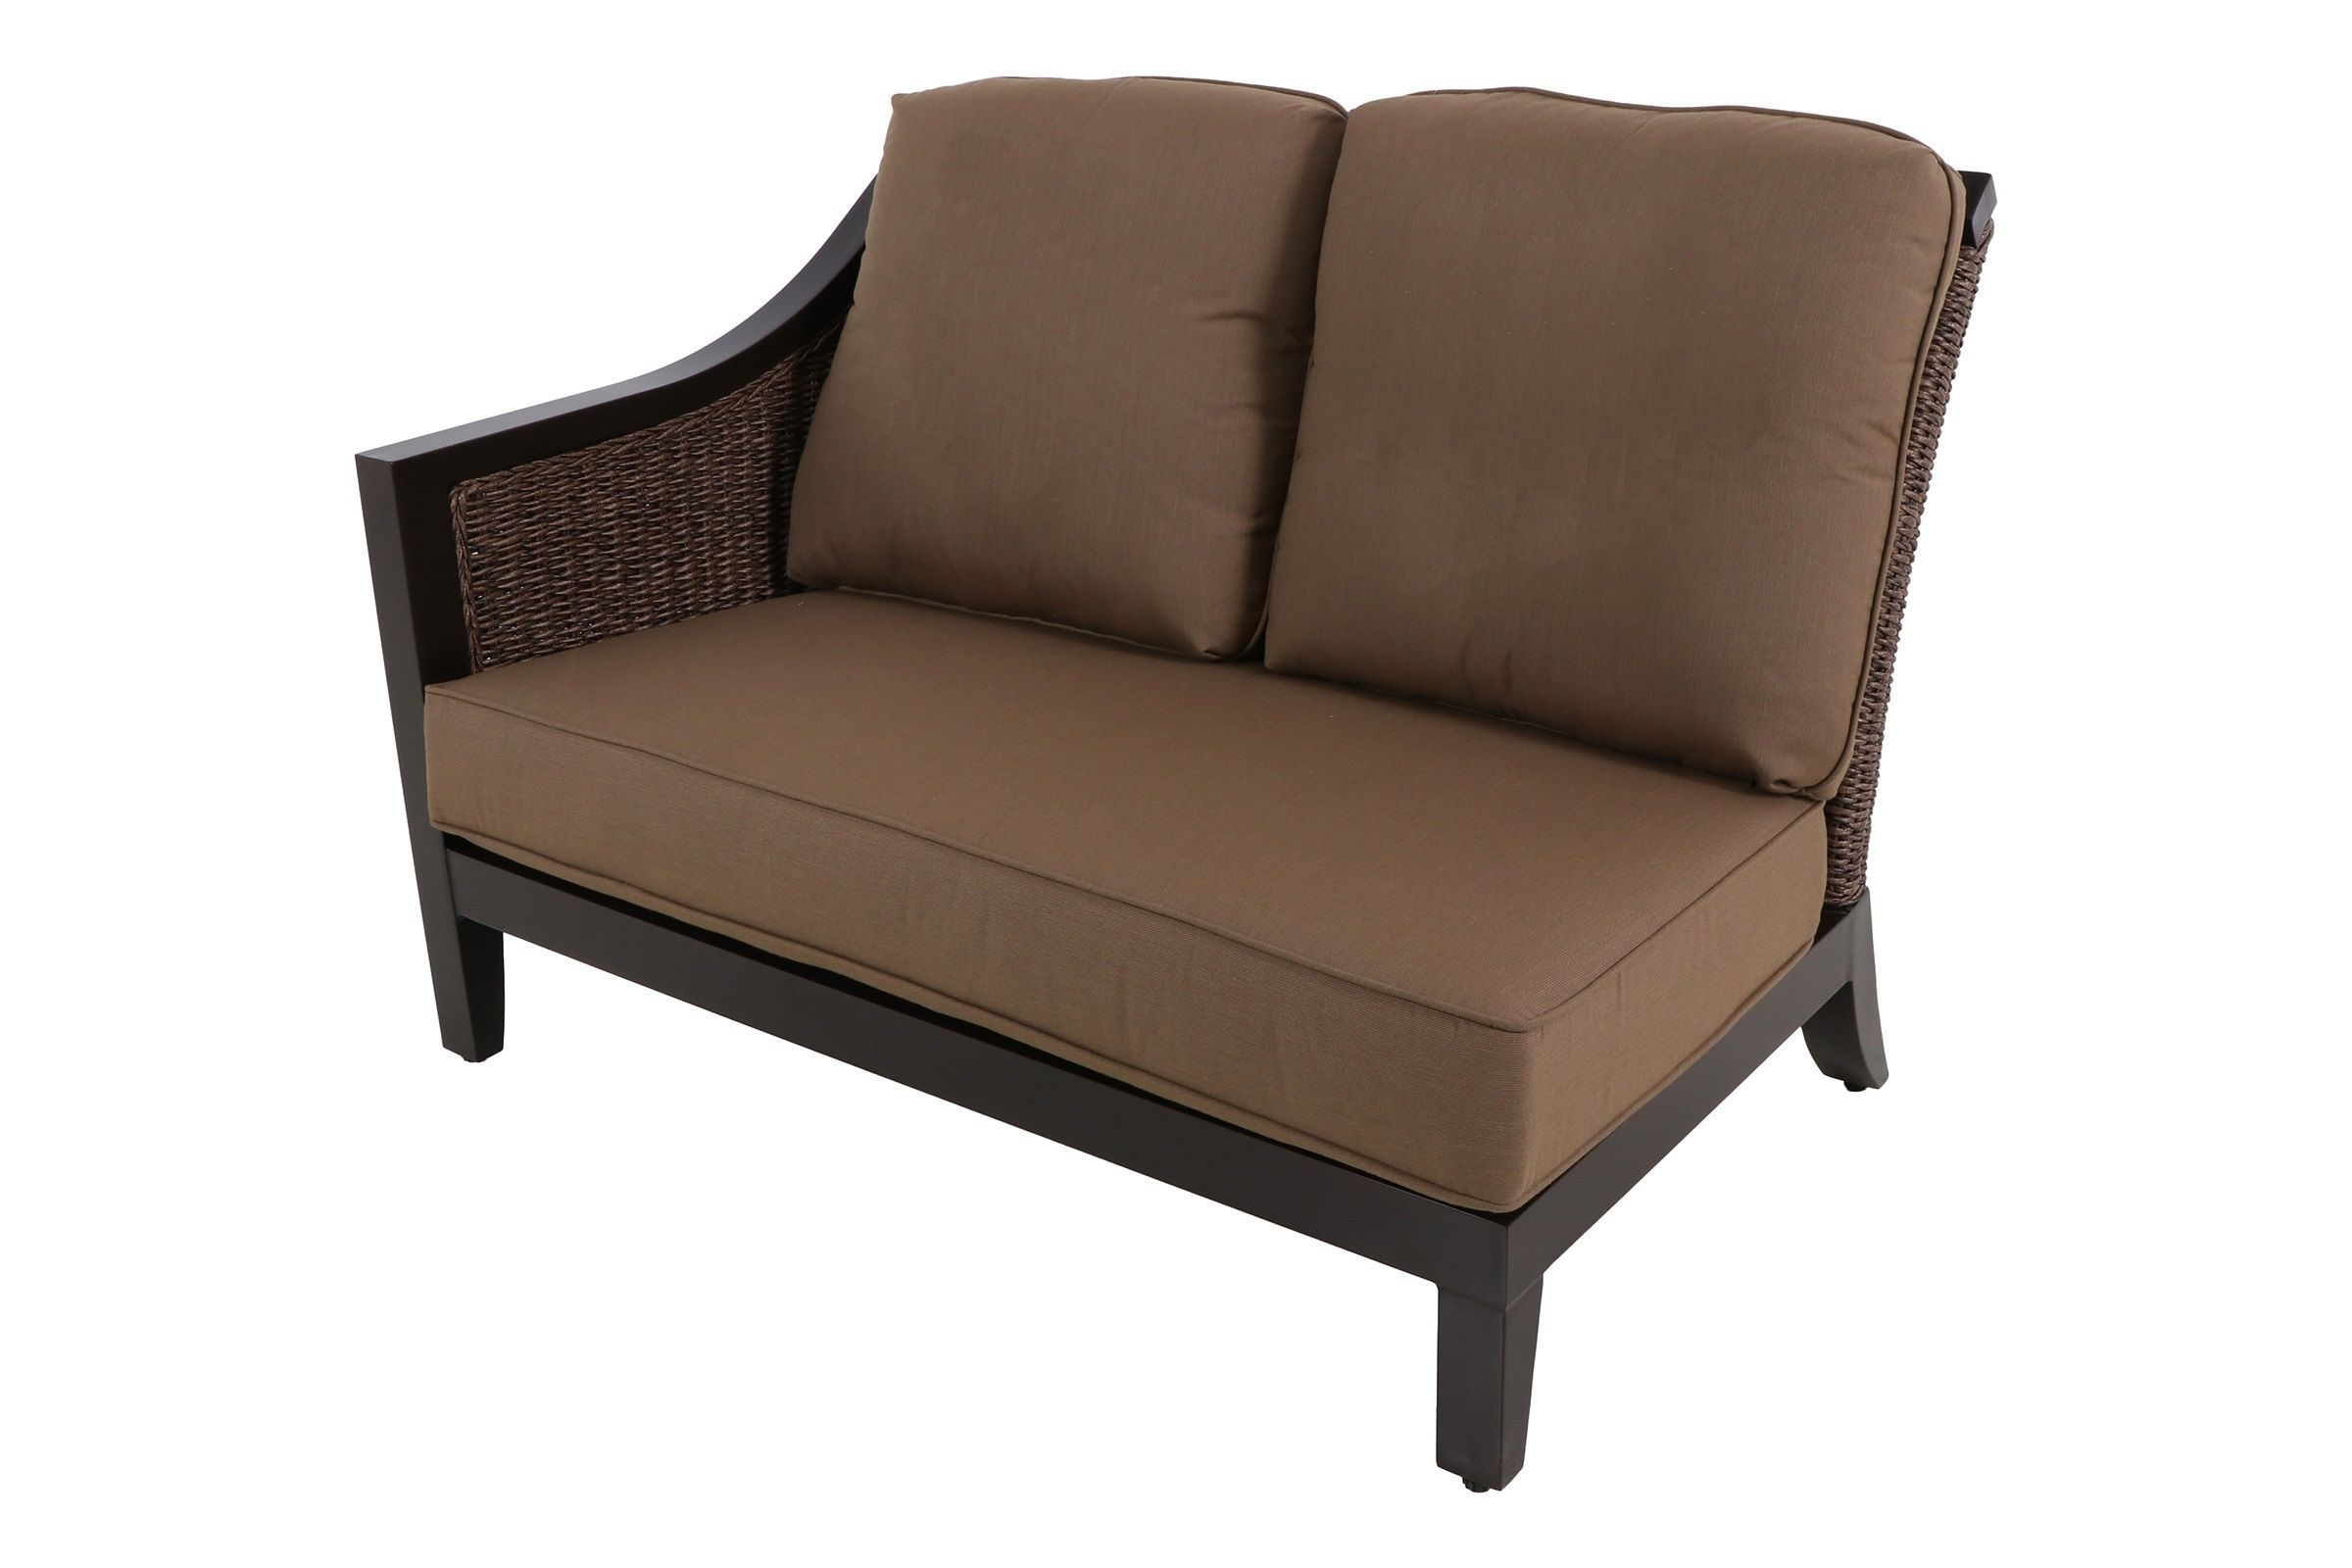 Loveseat Sectional | Whitecraftwoodard Mona Wicker Right Arm Regarding Taron 3 Piece Power Reclining Sectionals With Left Facing Console Loveseat (Image 15 of 25)